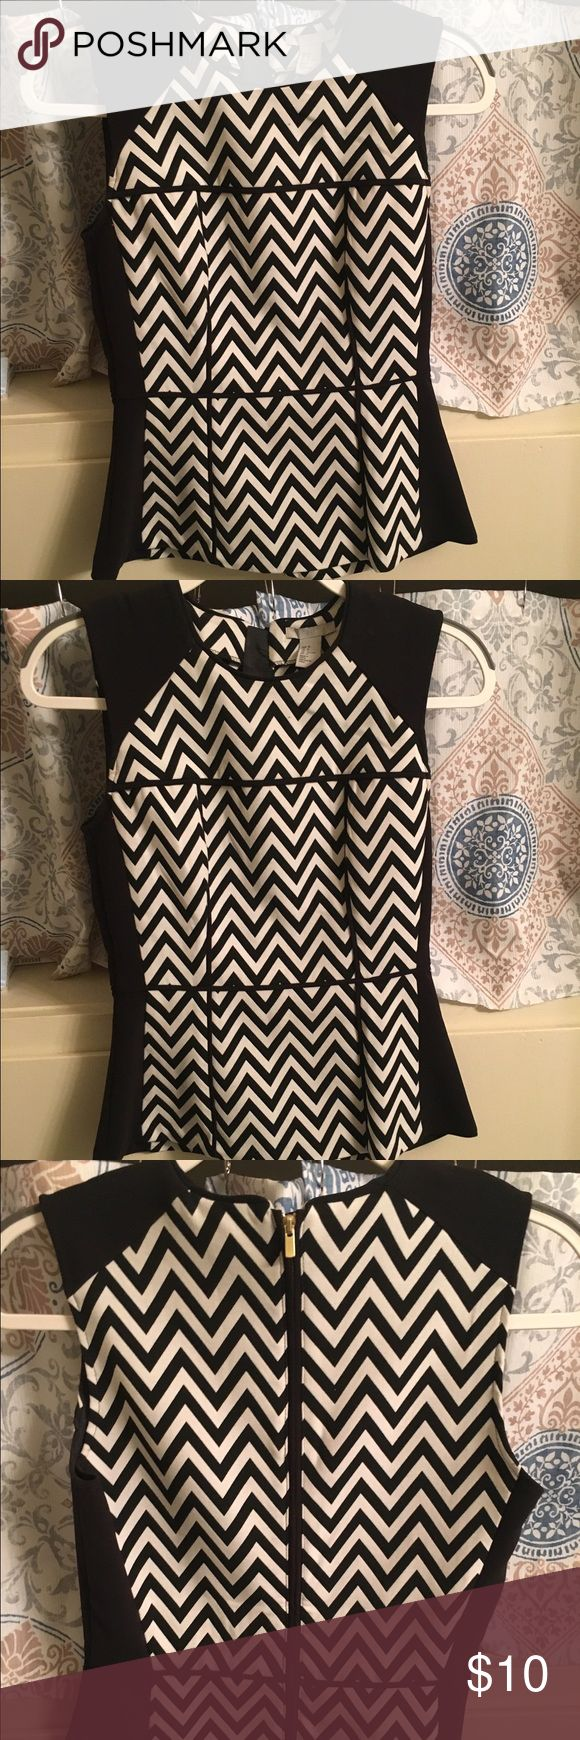 H&M black and white chevron top Black and white chevron top from H&M. In excellent condition! H&M Tops